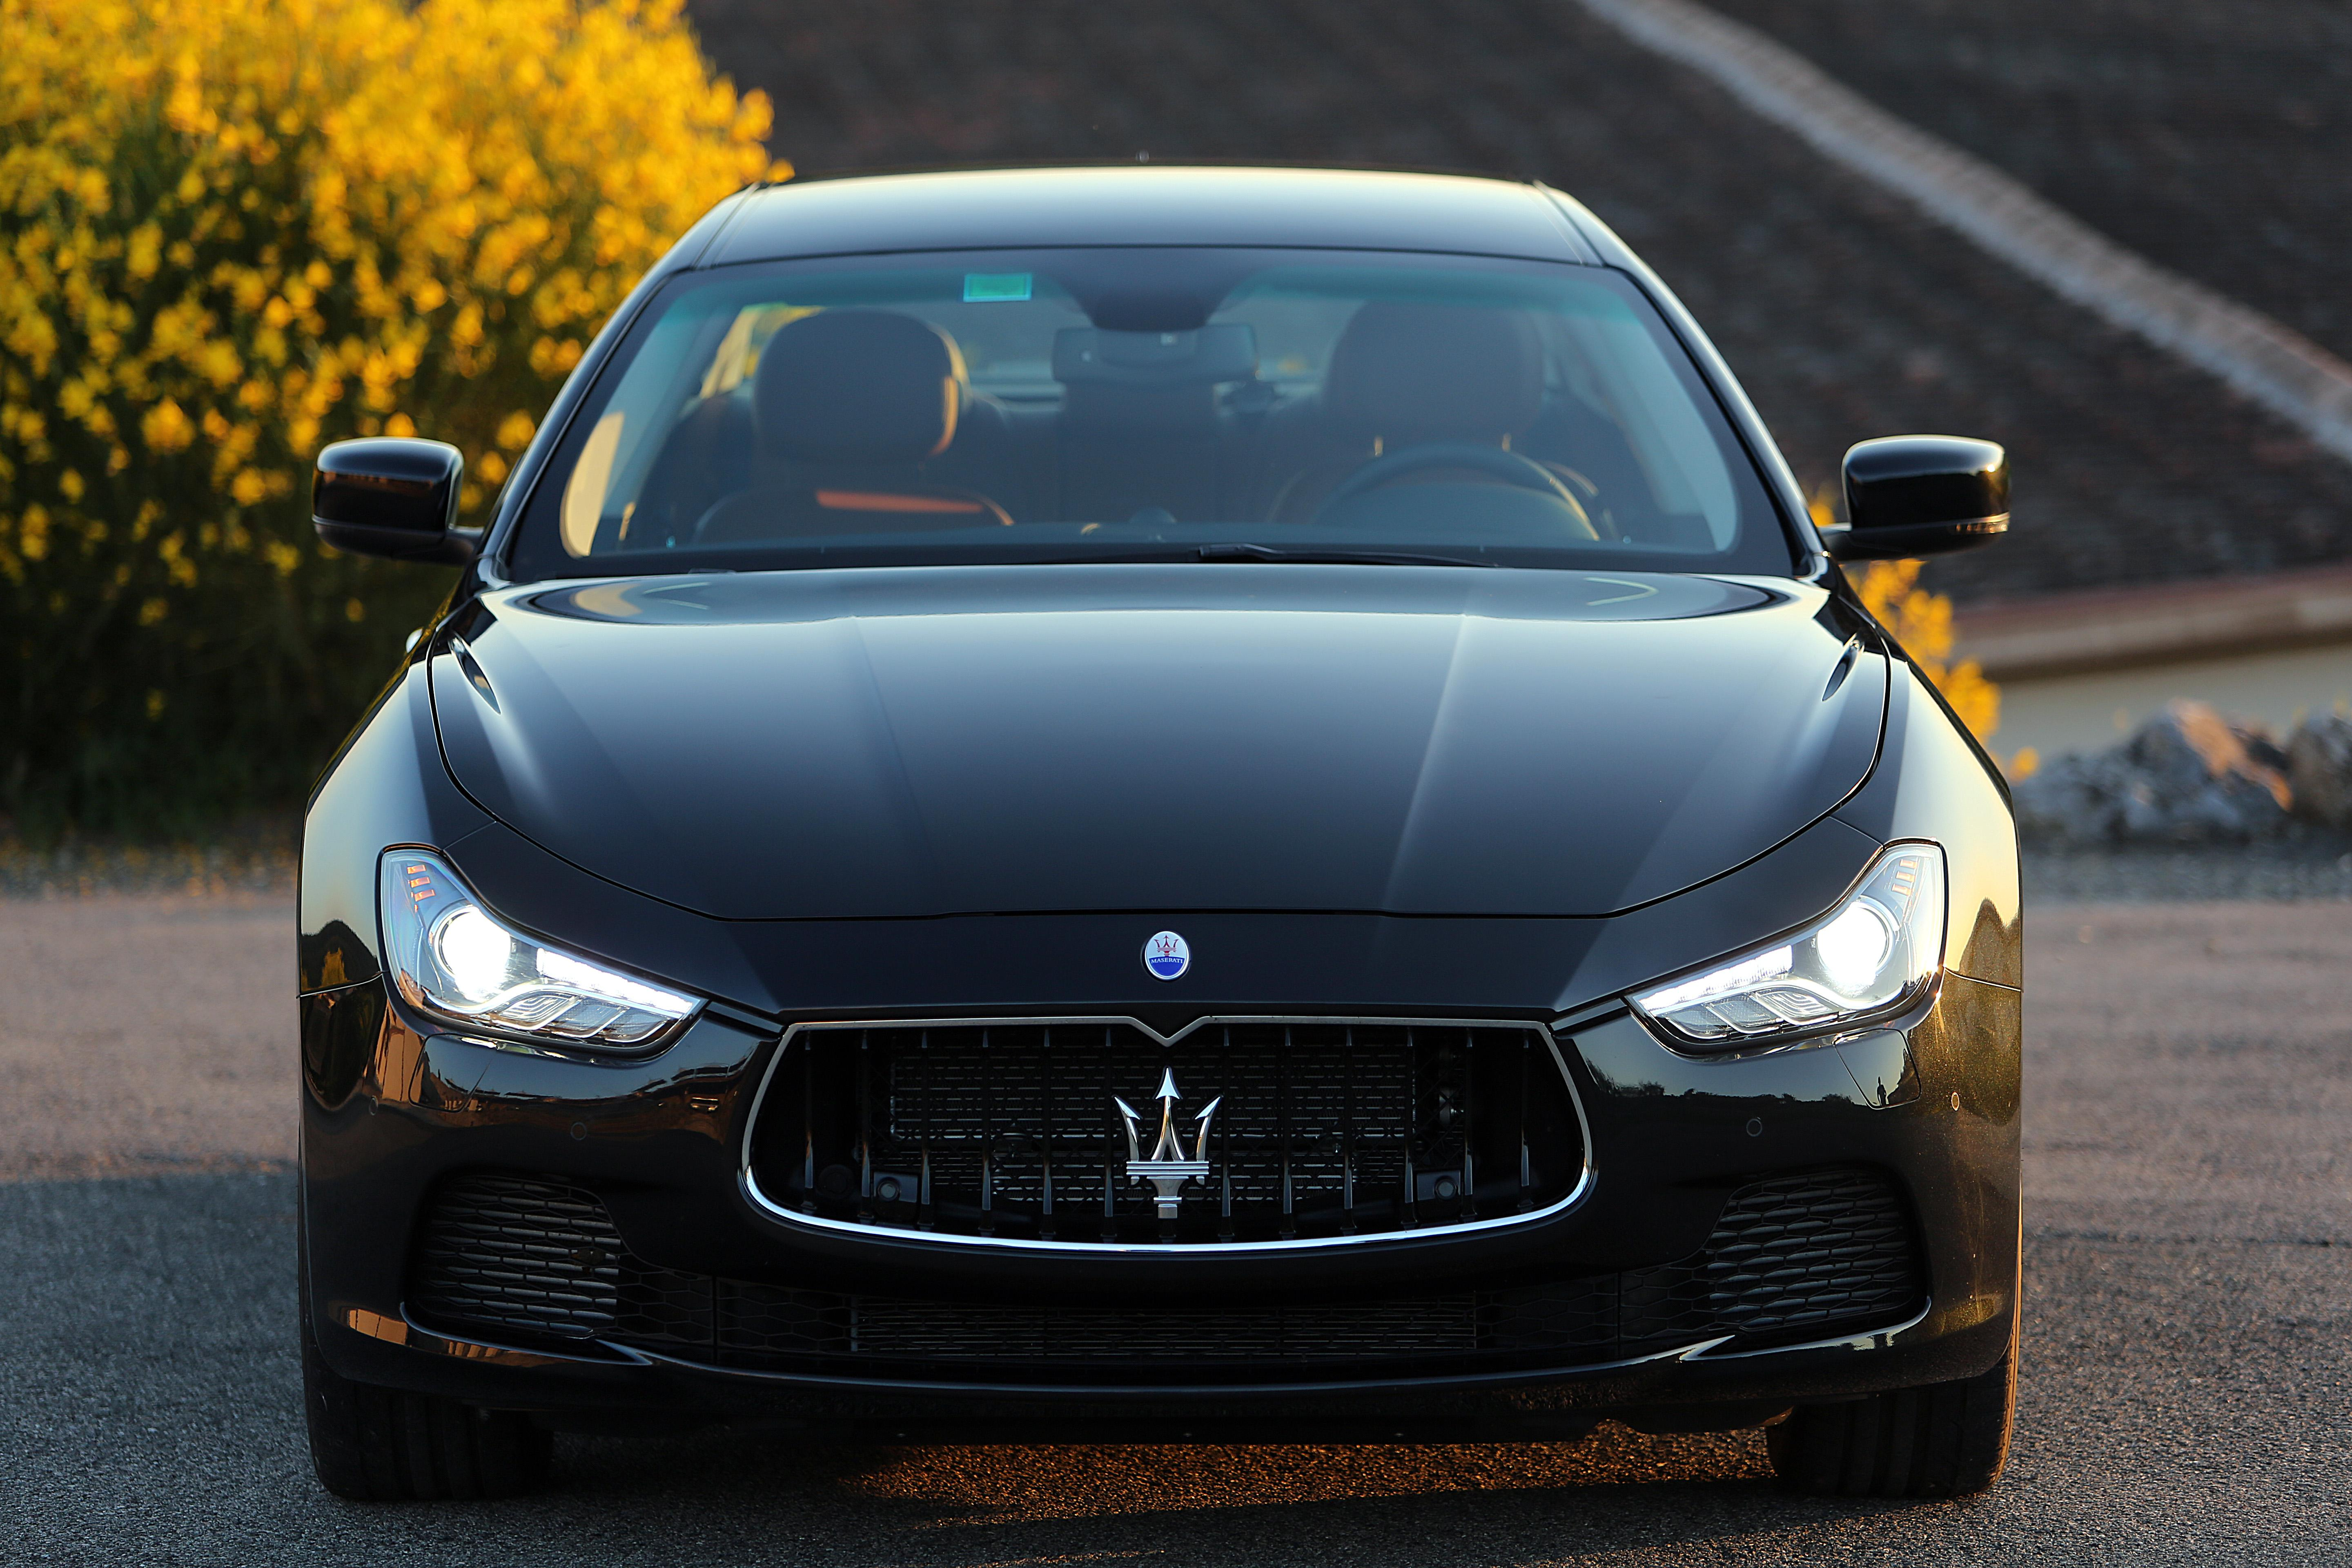 Driving gloves yahoo answers - The Maserati Ghibli This Is What It S Like When A Car Just Feels Right